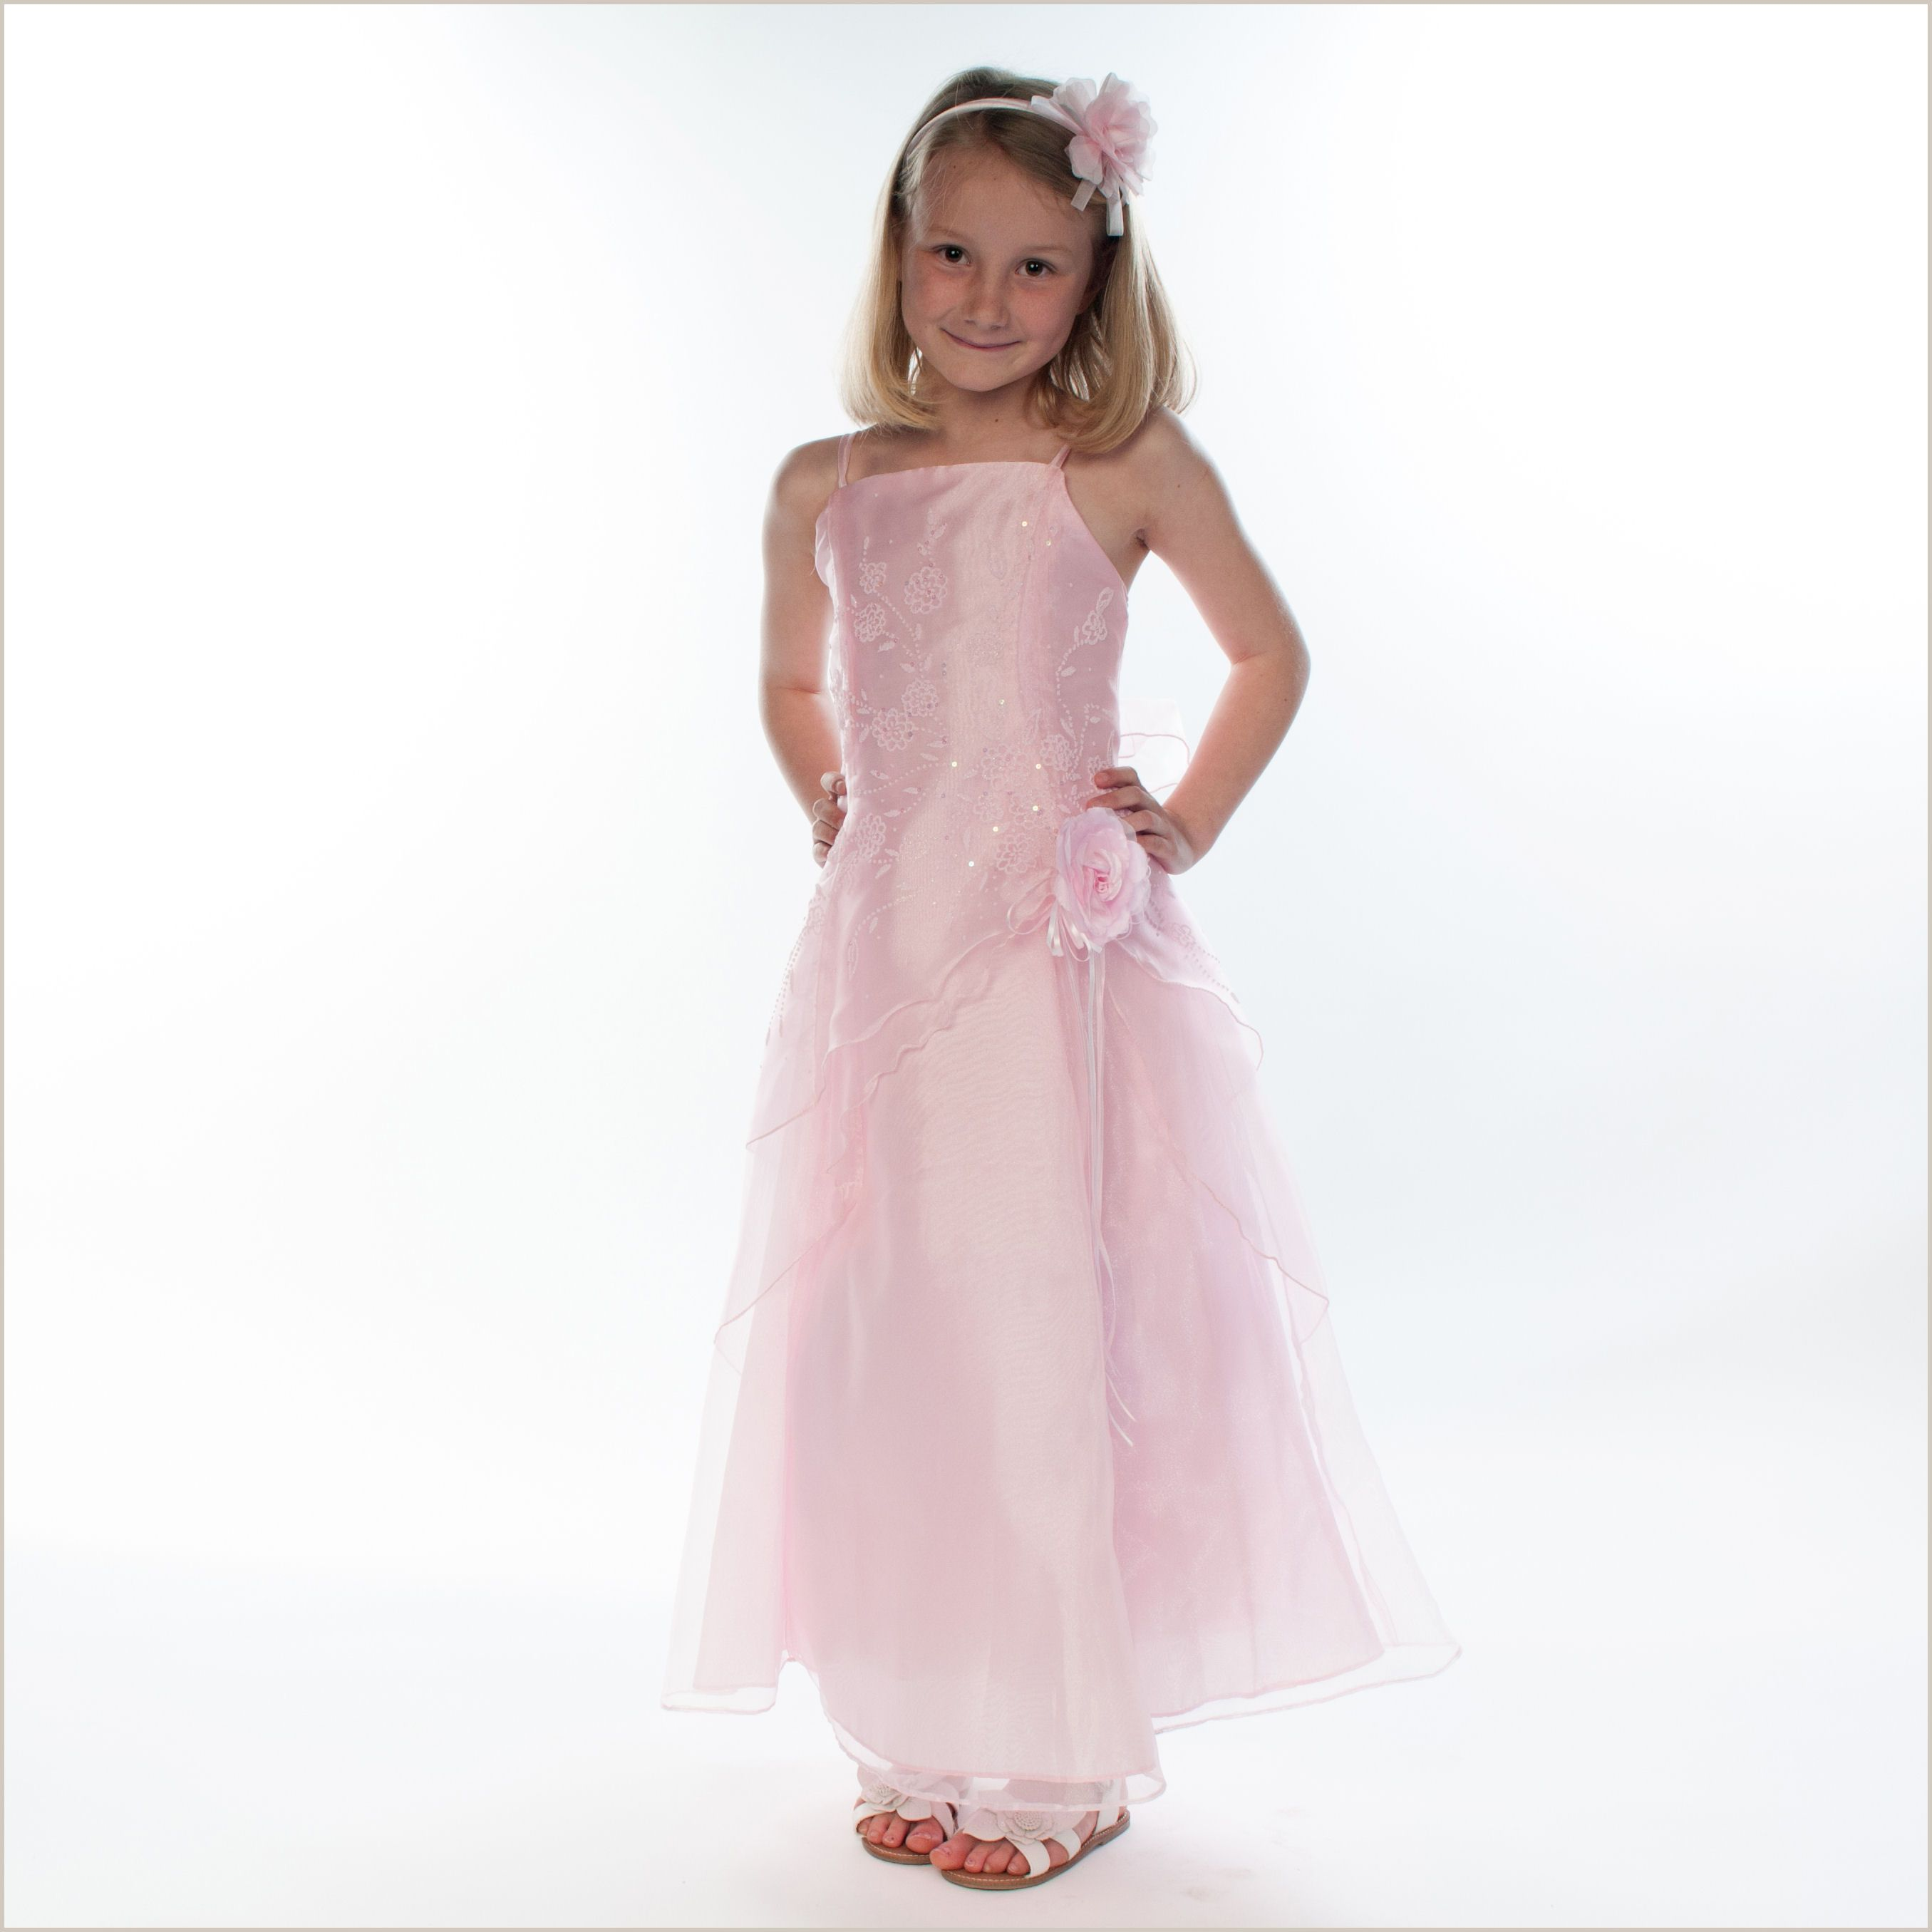 Nett Childrens Pink Bridesmaid Dresses Bilder - Brautkleider Ideen ...